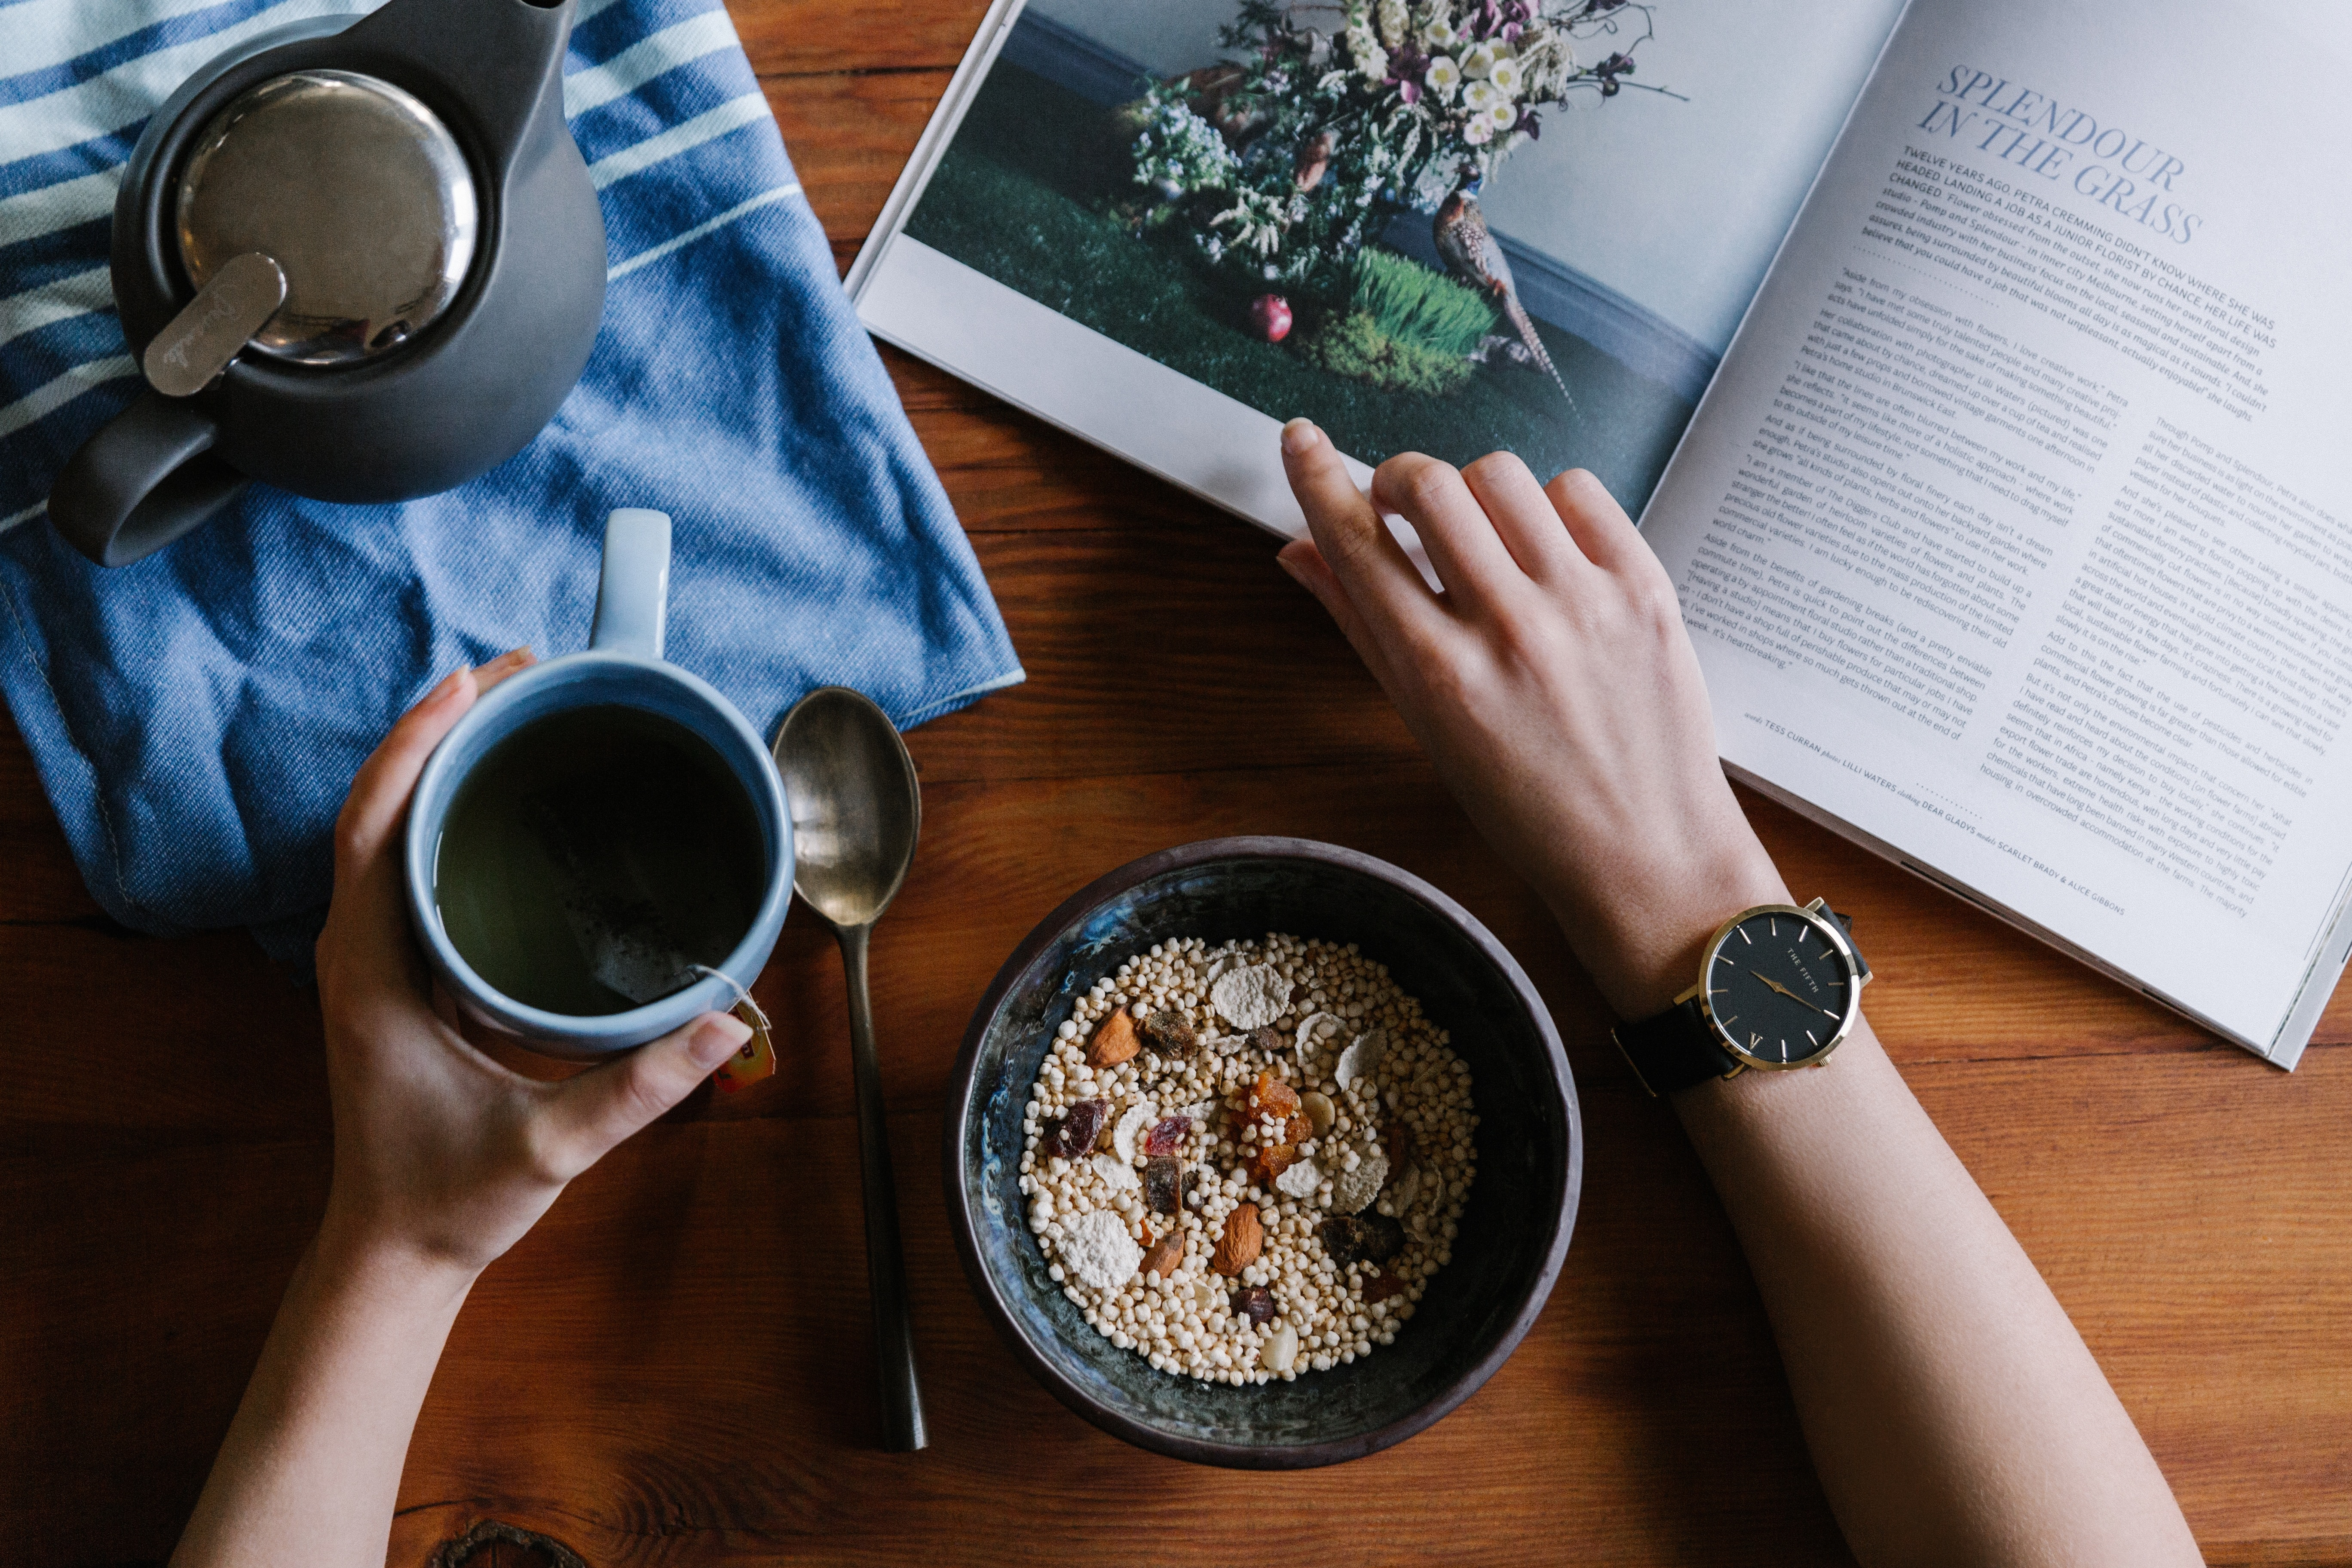 A person reading a book over a cup of coffee and a bowl of granola